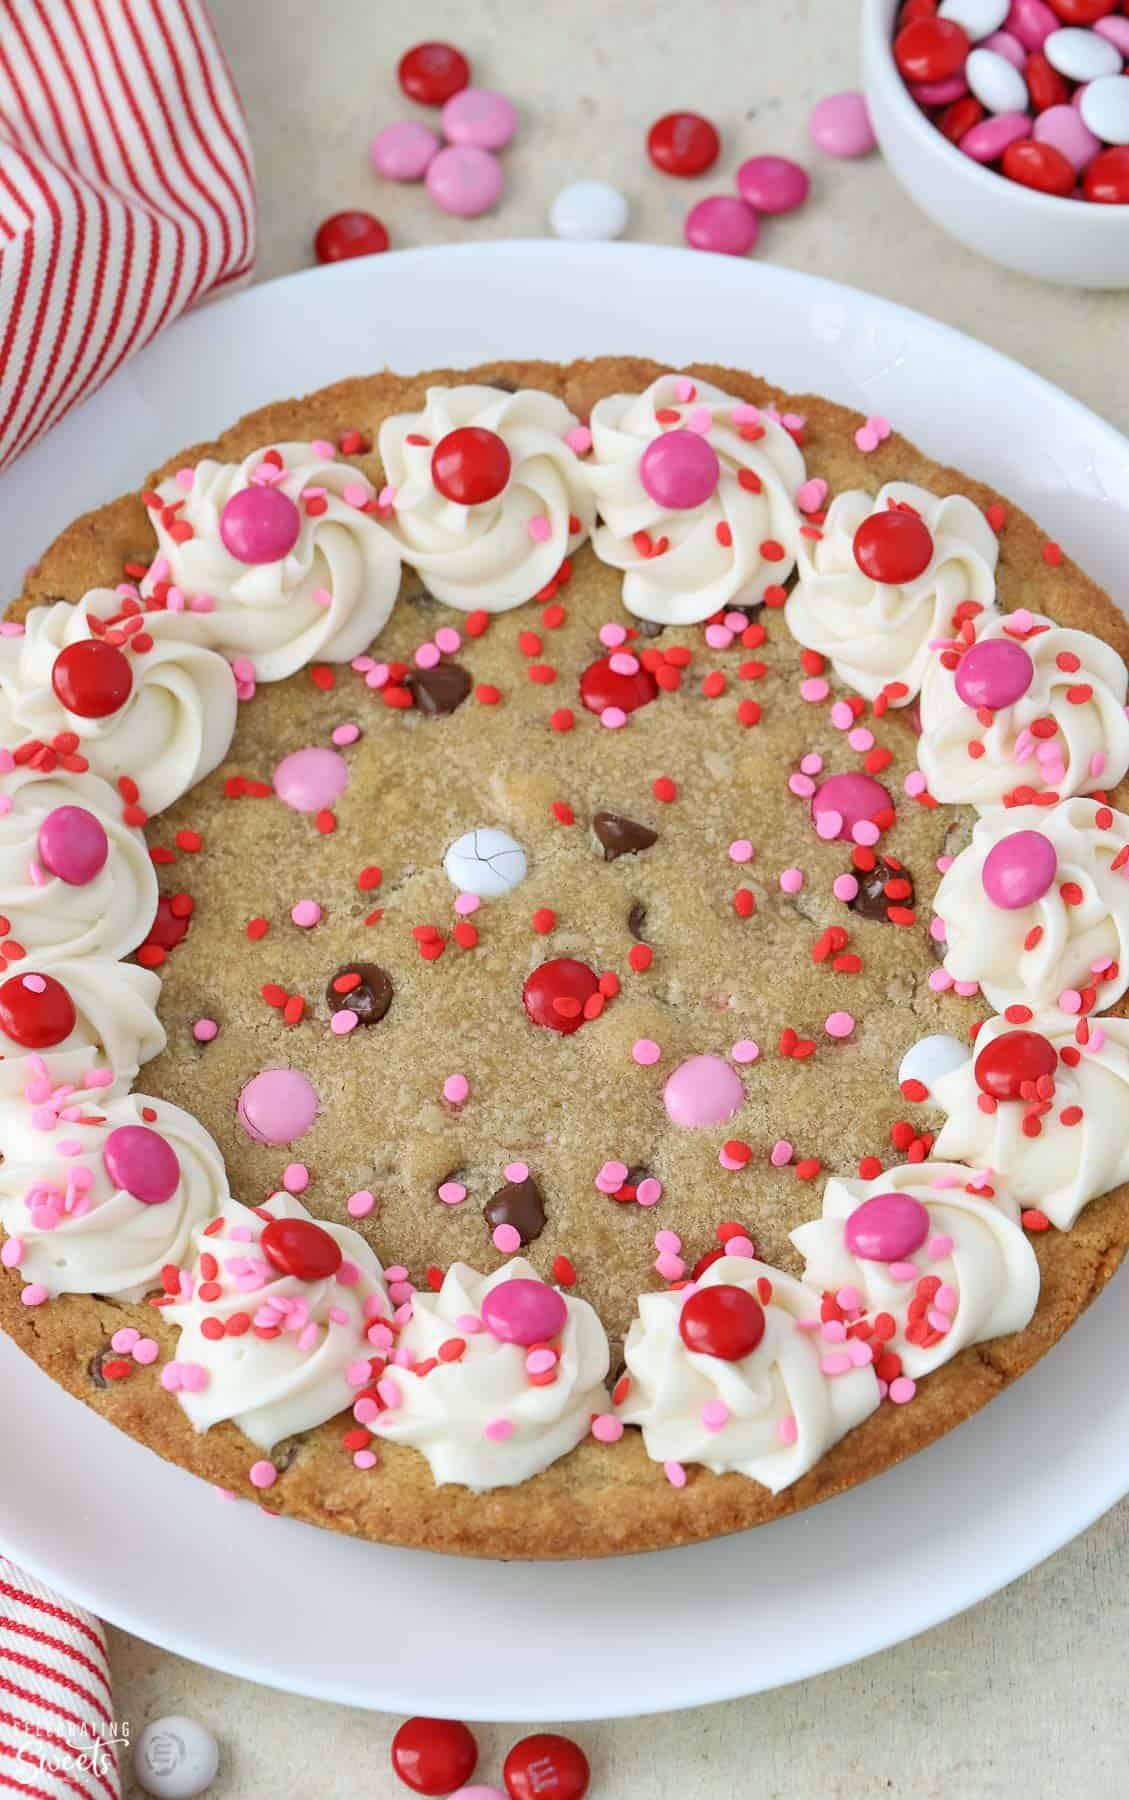 Cookie cake topped with frosting and red and pink M&M's